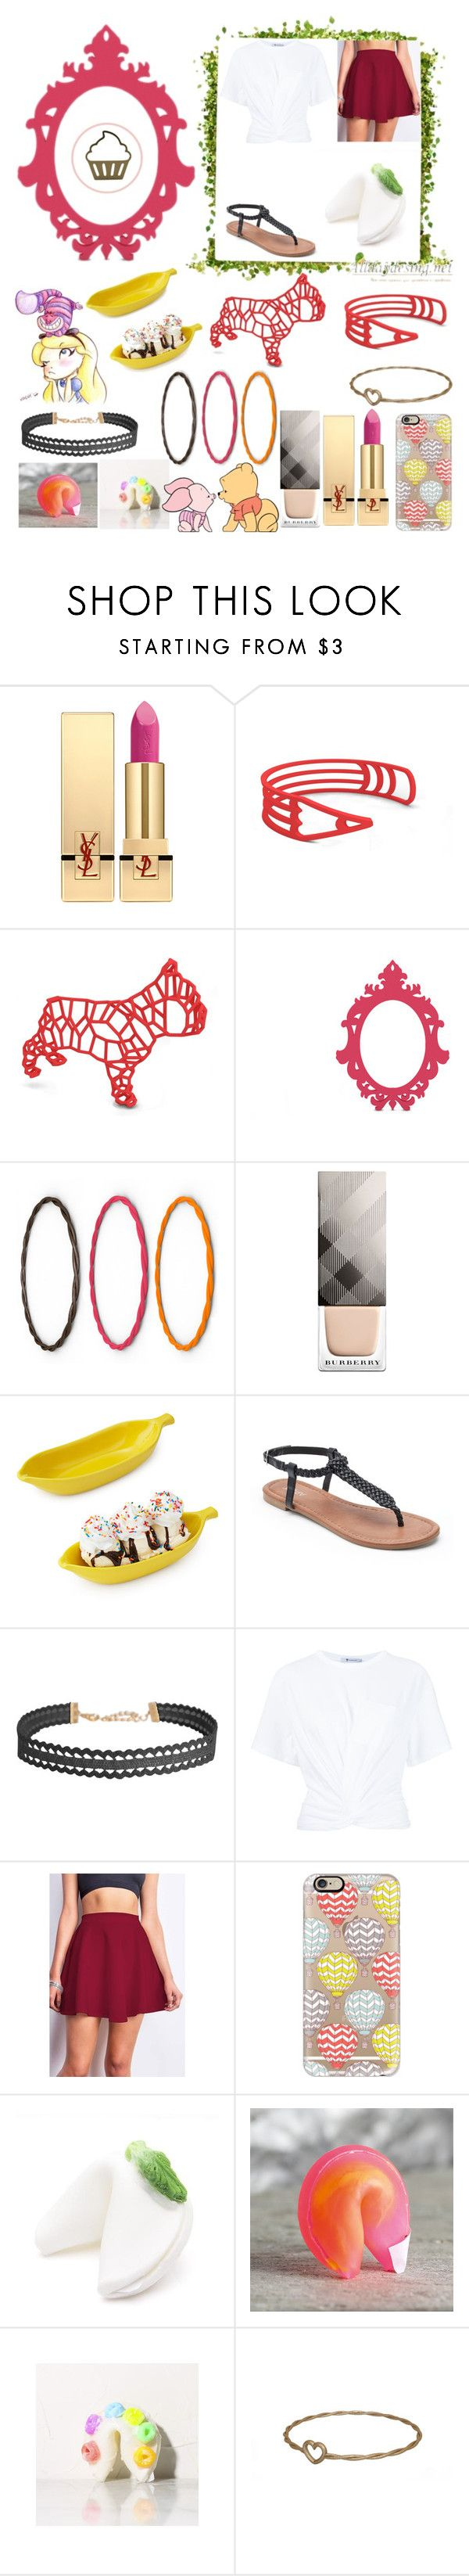 """""""Winnie the Poo in a Hot Air Balloon!"""" by katykitty5397 on Polyvore featuring Yves Saint Laurent, Burberry, BIA Cordon Bleu, Apt. 9, Humble Chic, T By Alexander Wang and Casetify"""